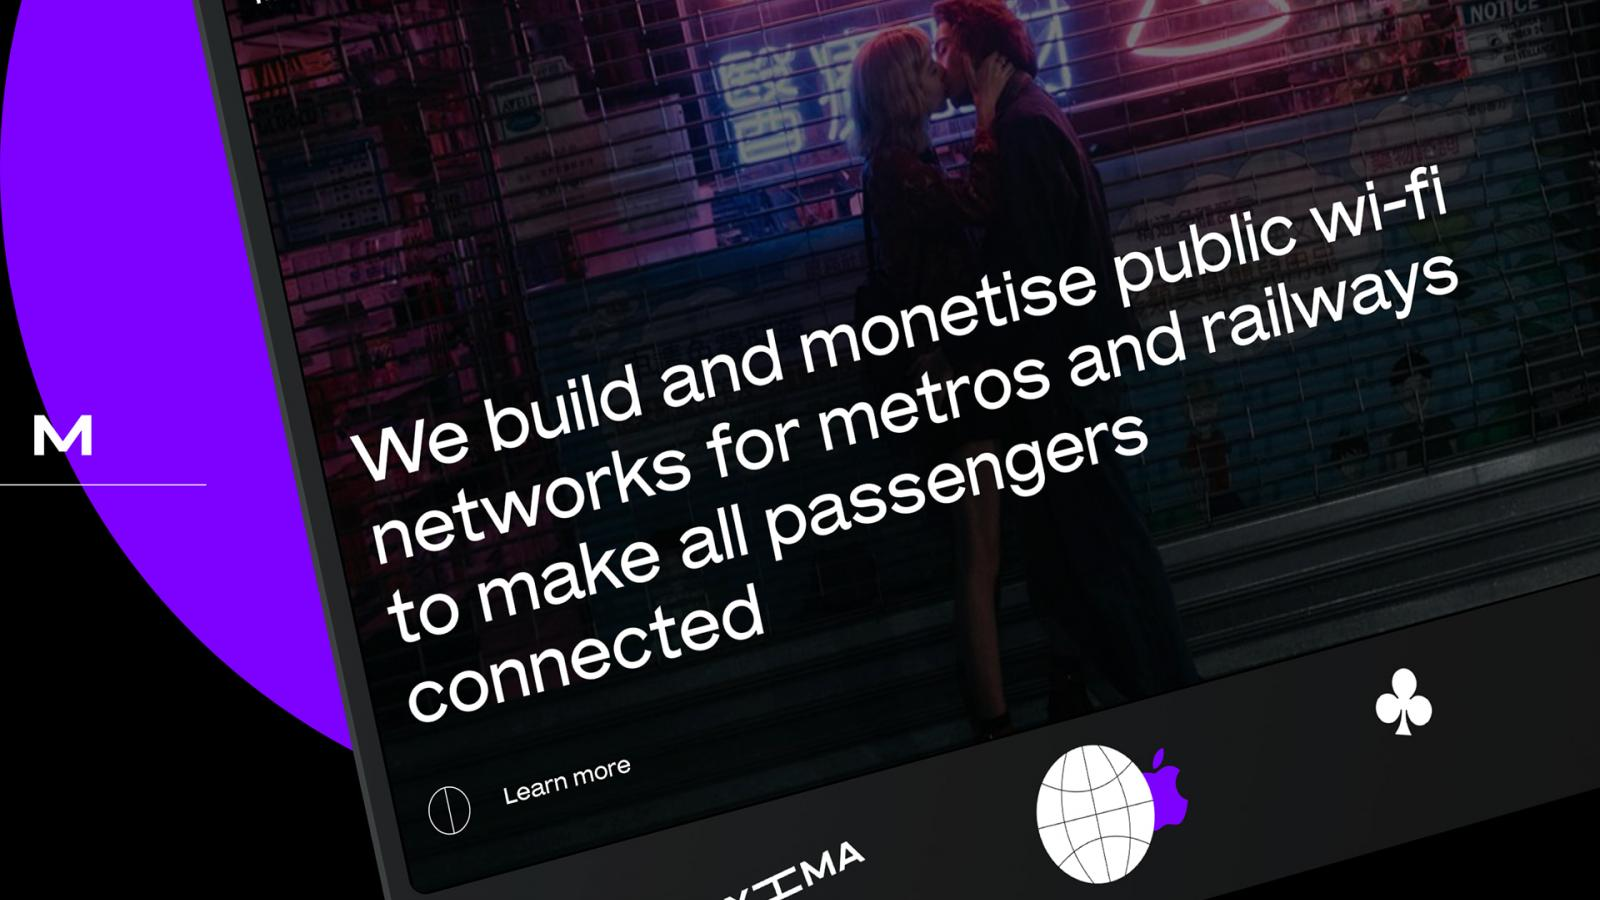 Web Design for Maxima.tech, a Public Wi-Fi for metros and railways